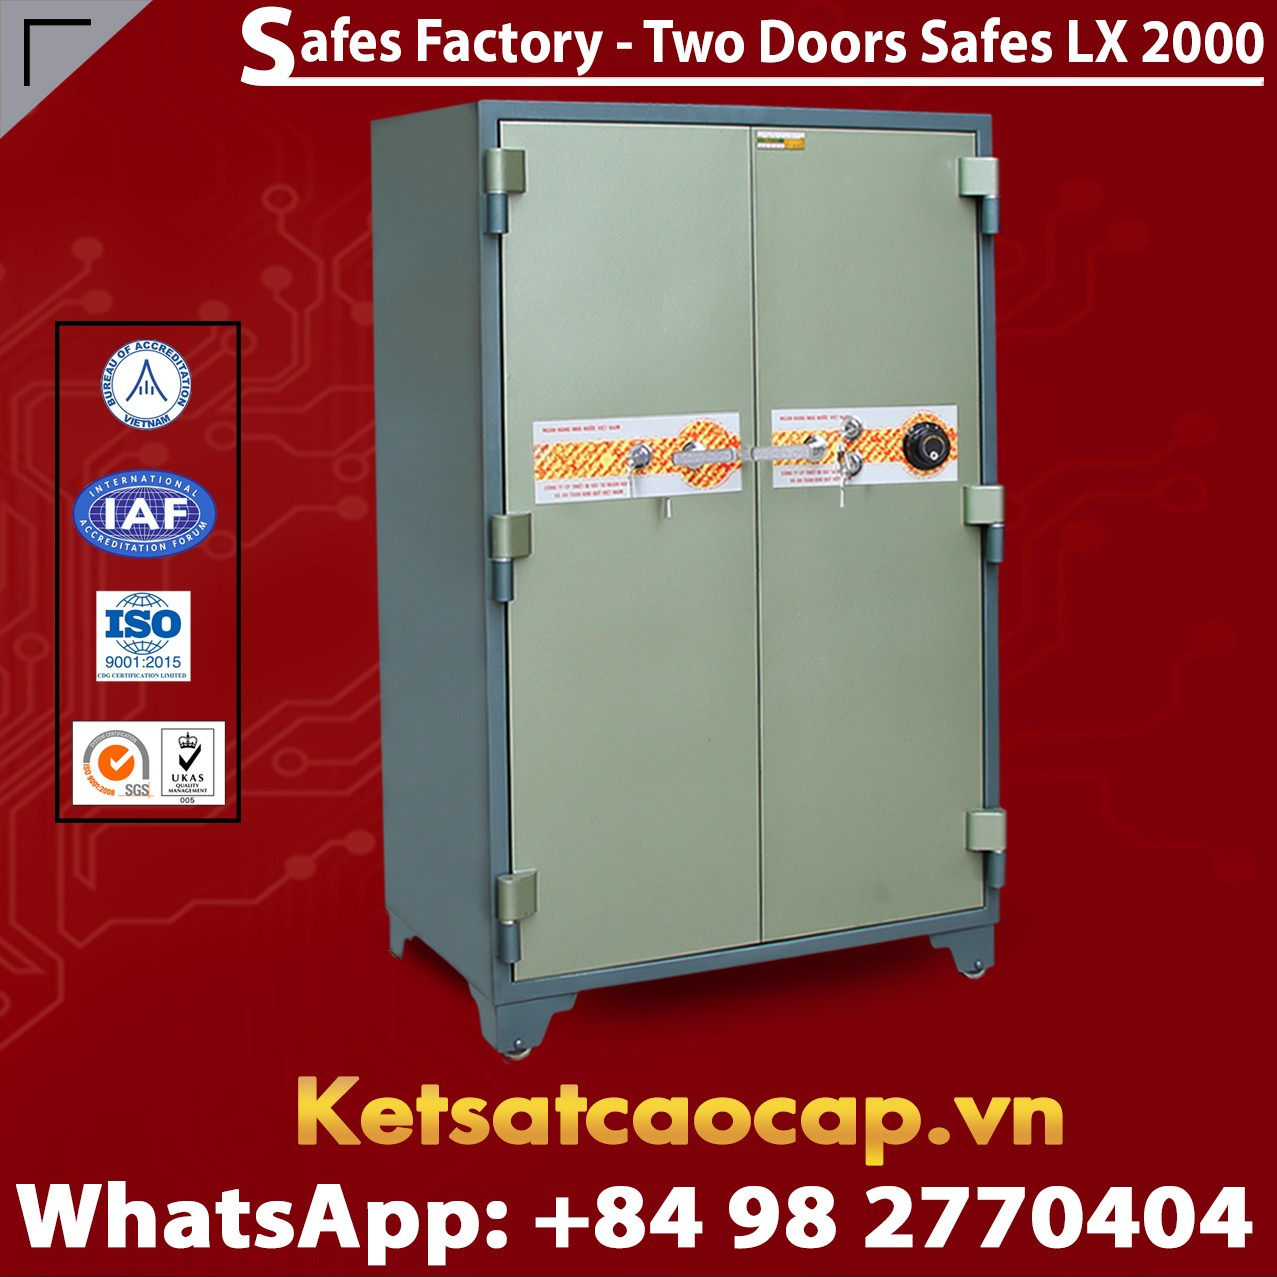 Bank Safes LX2000 DK Two Doors Mechanical Fireproof